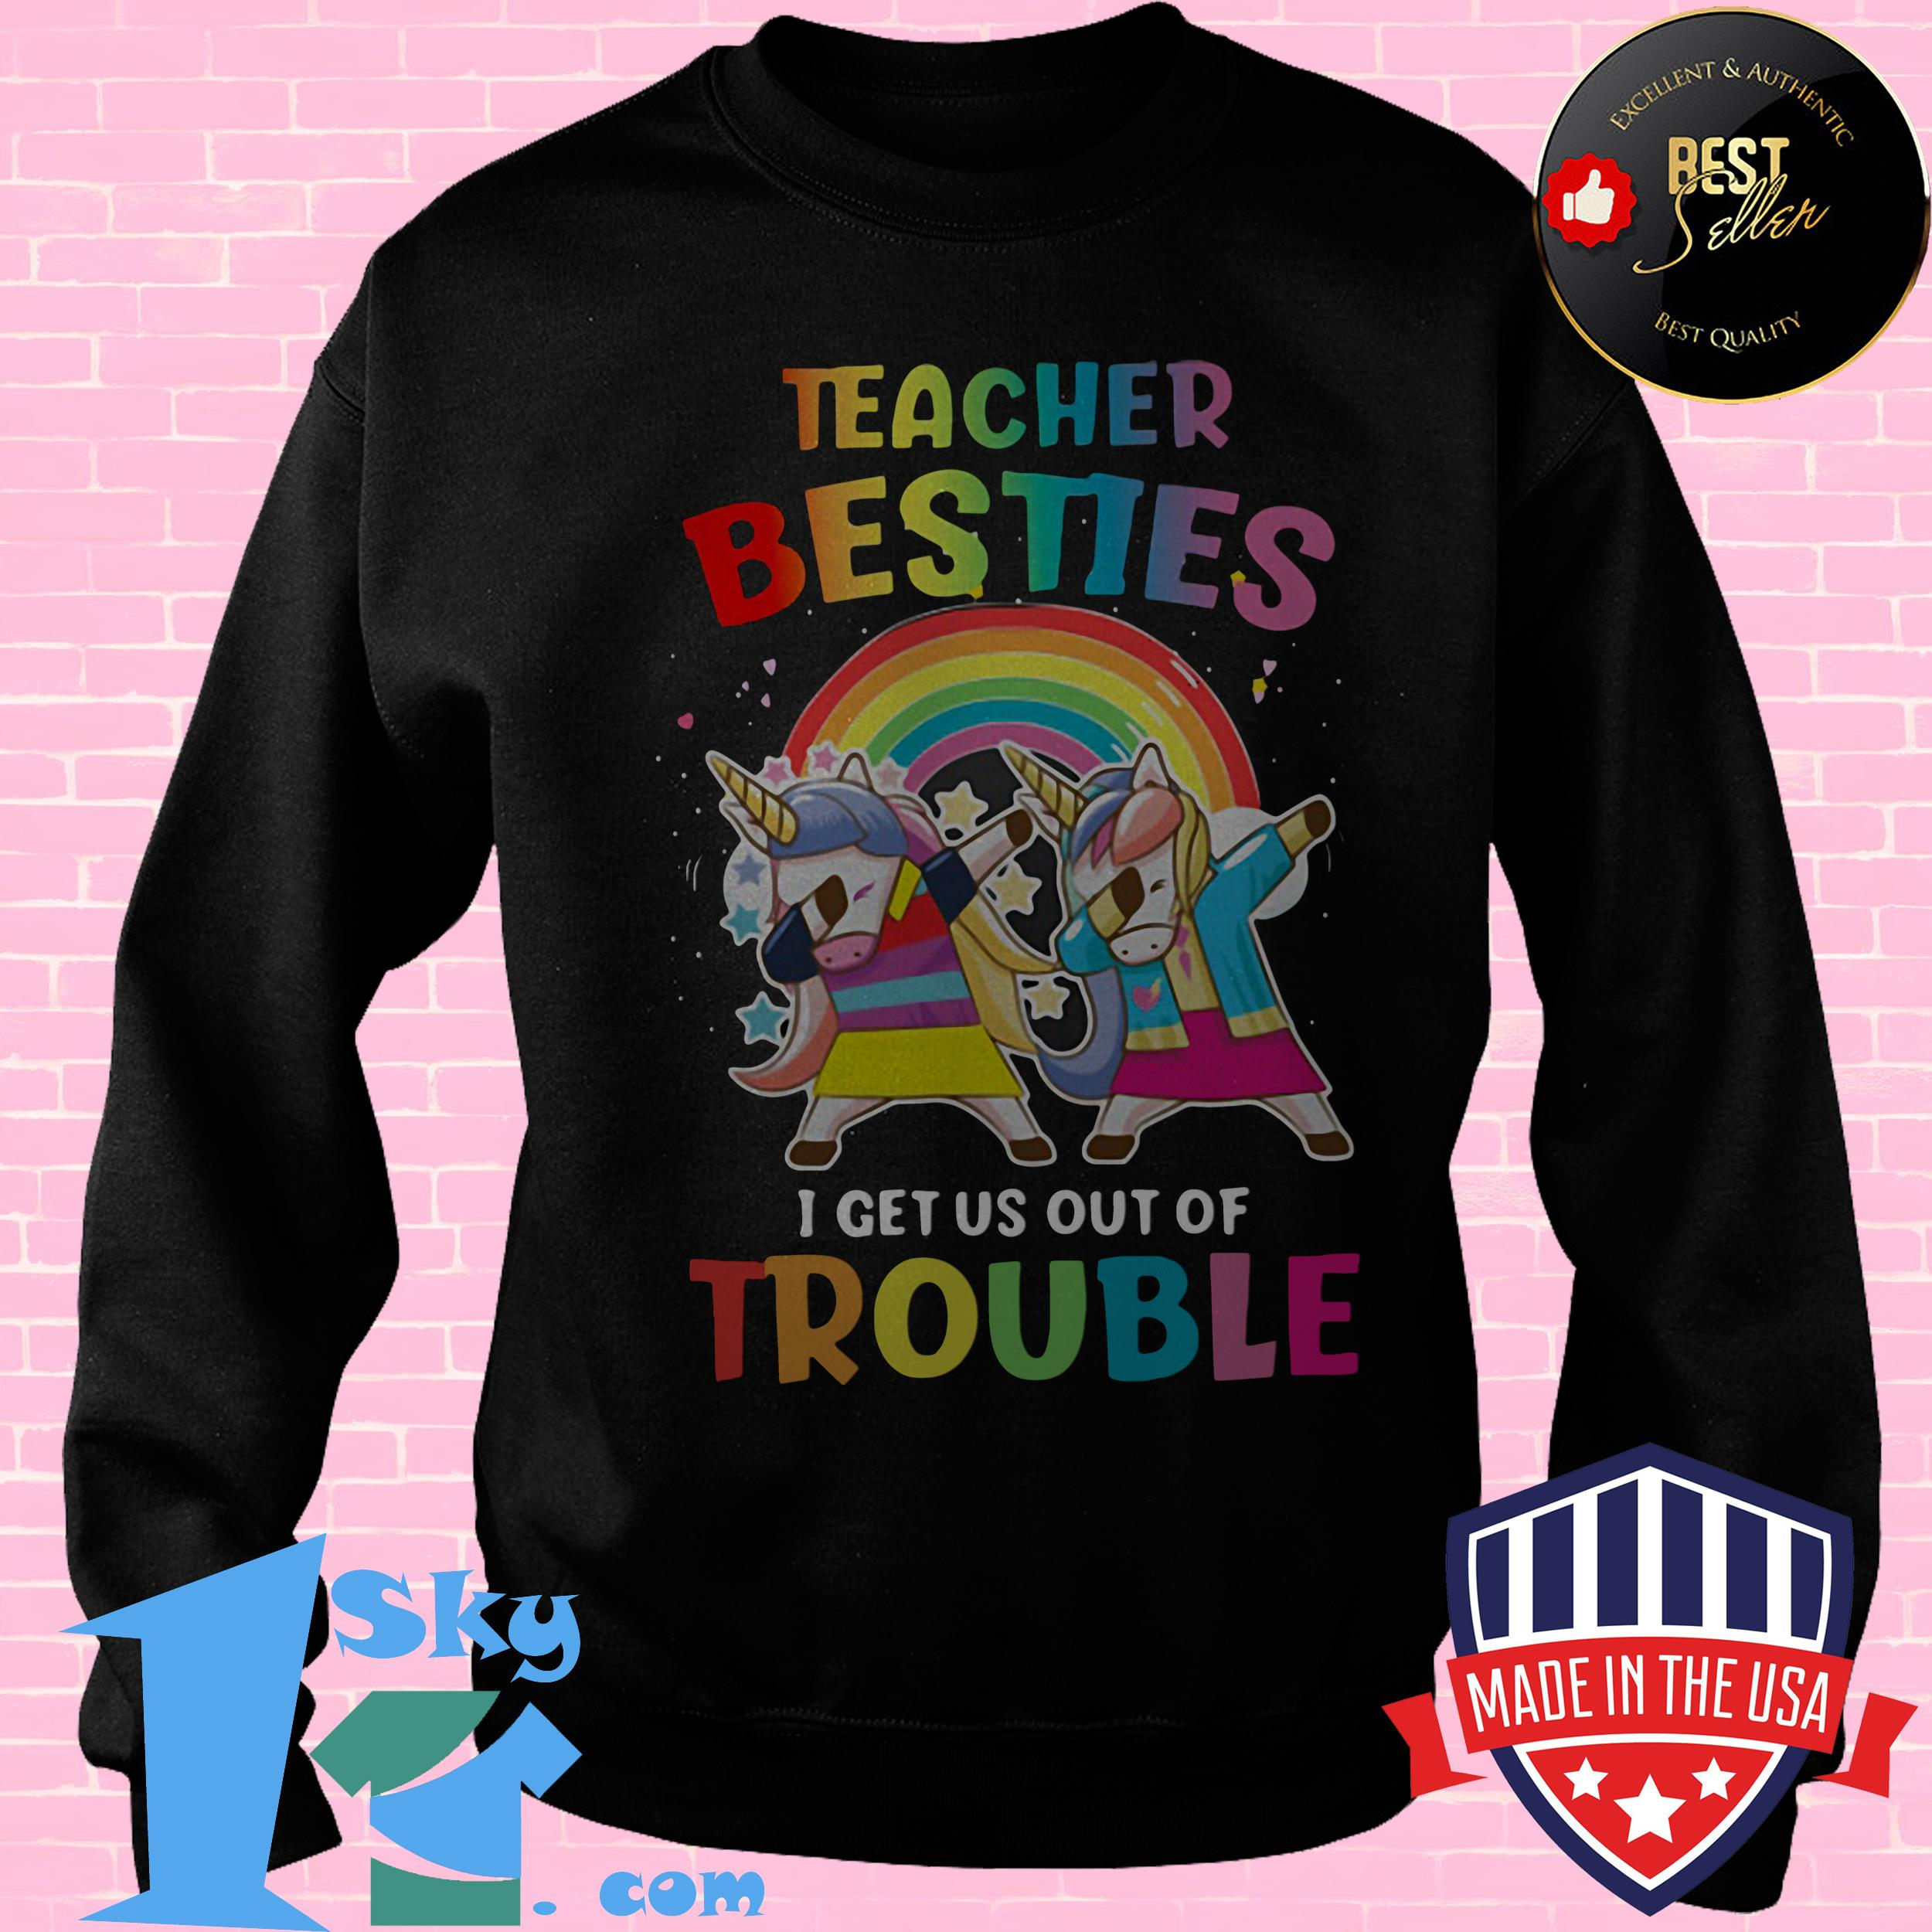 lgbt teacher besties i get us out of trouble unicorn sweatshirt - LGBT Teacher Besties I Get Us Out Of Trouble Unicorn shirt